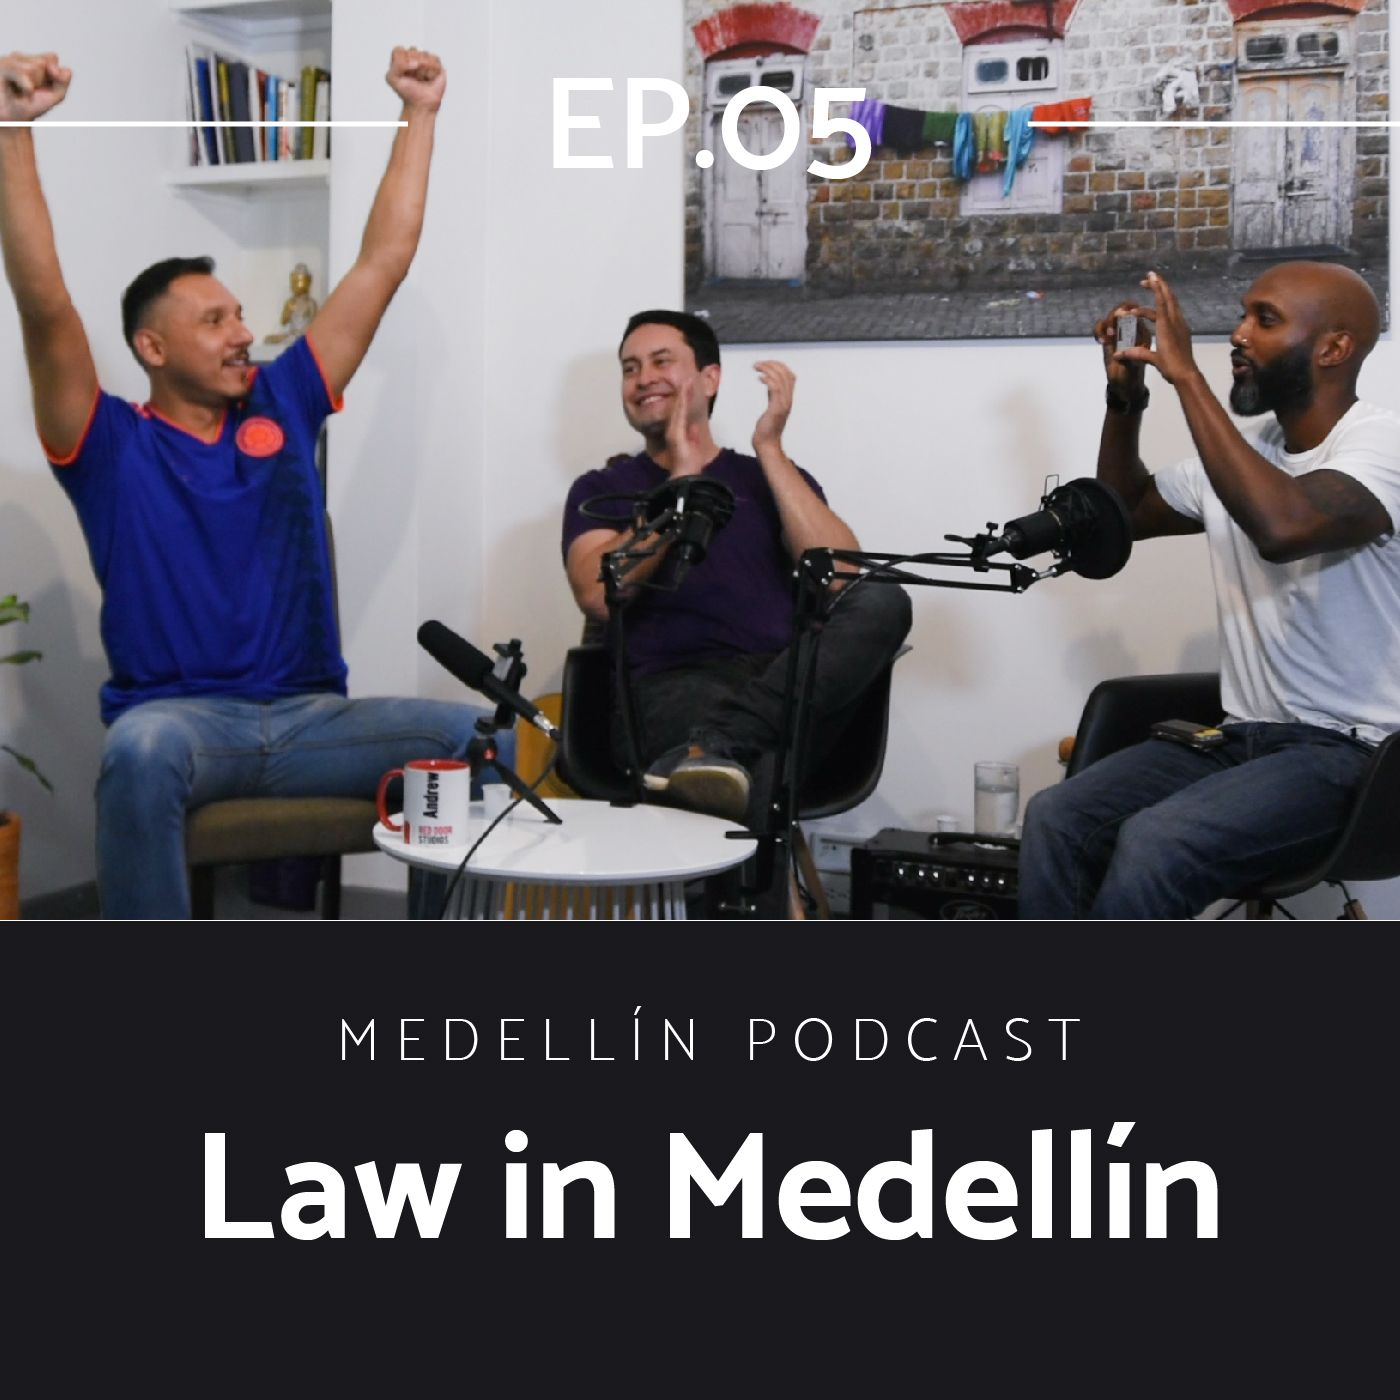 The Law In Medellin - Medellin Podcast Ep. 05